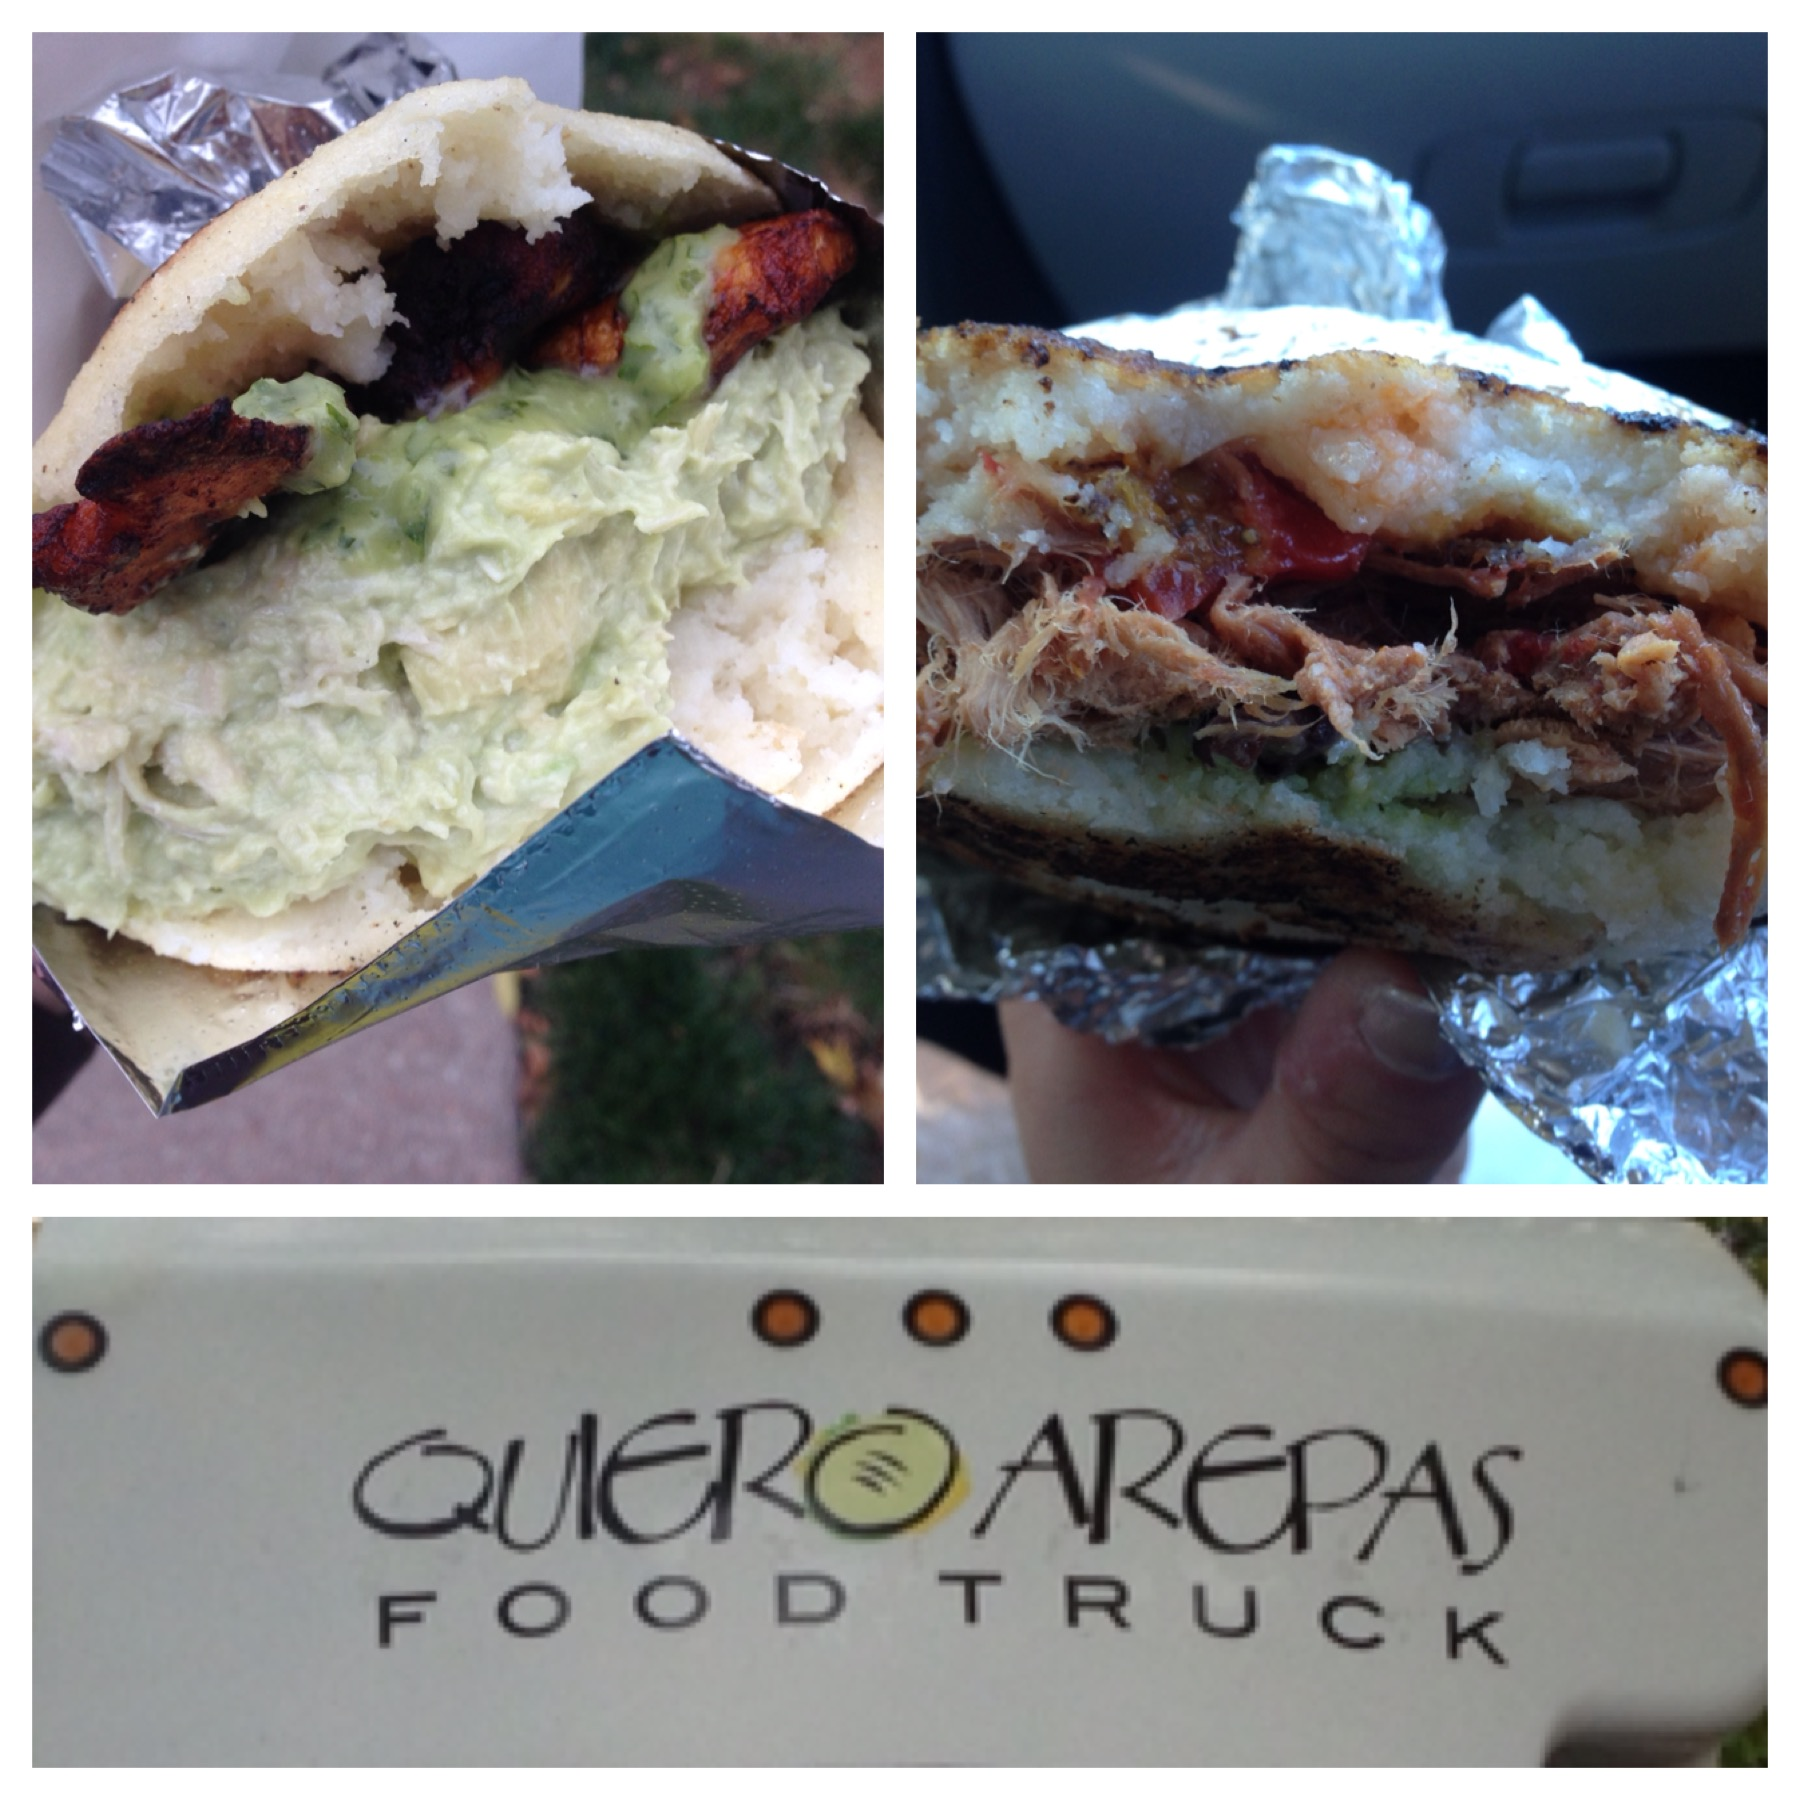 Lunch from Quiero Arepas